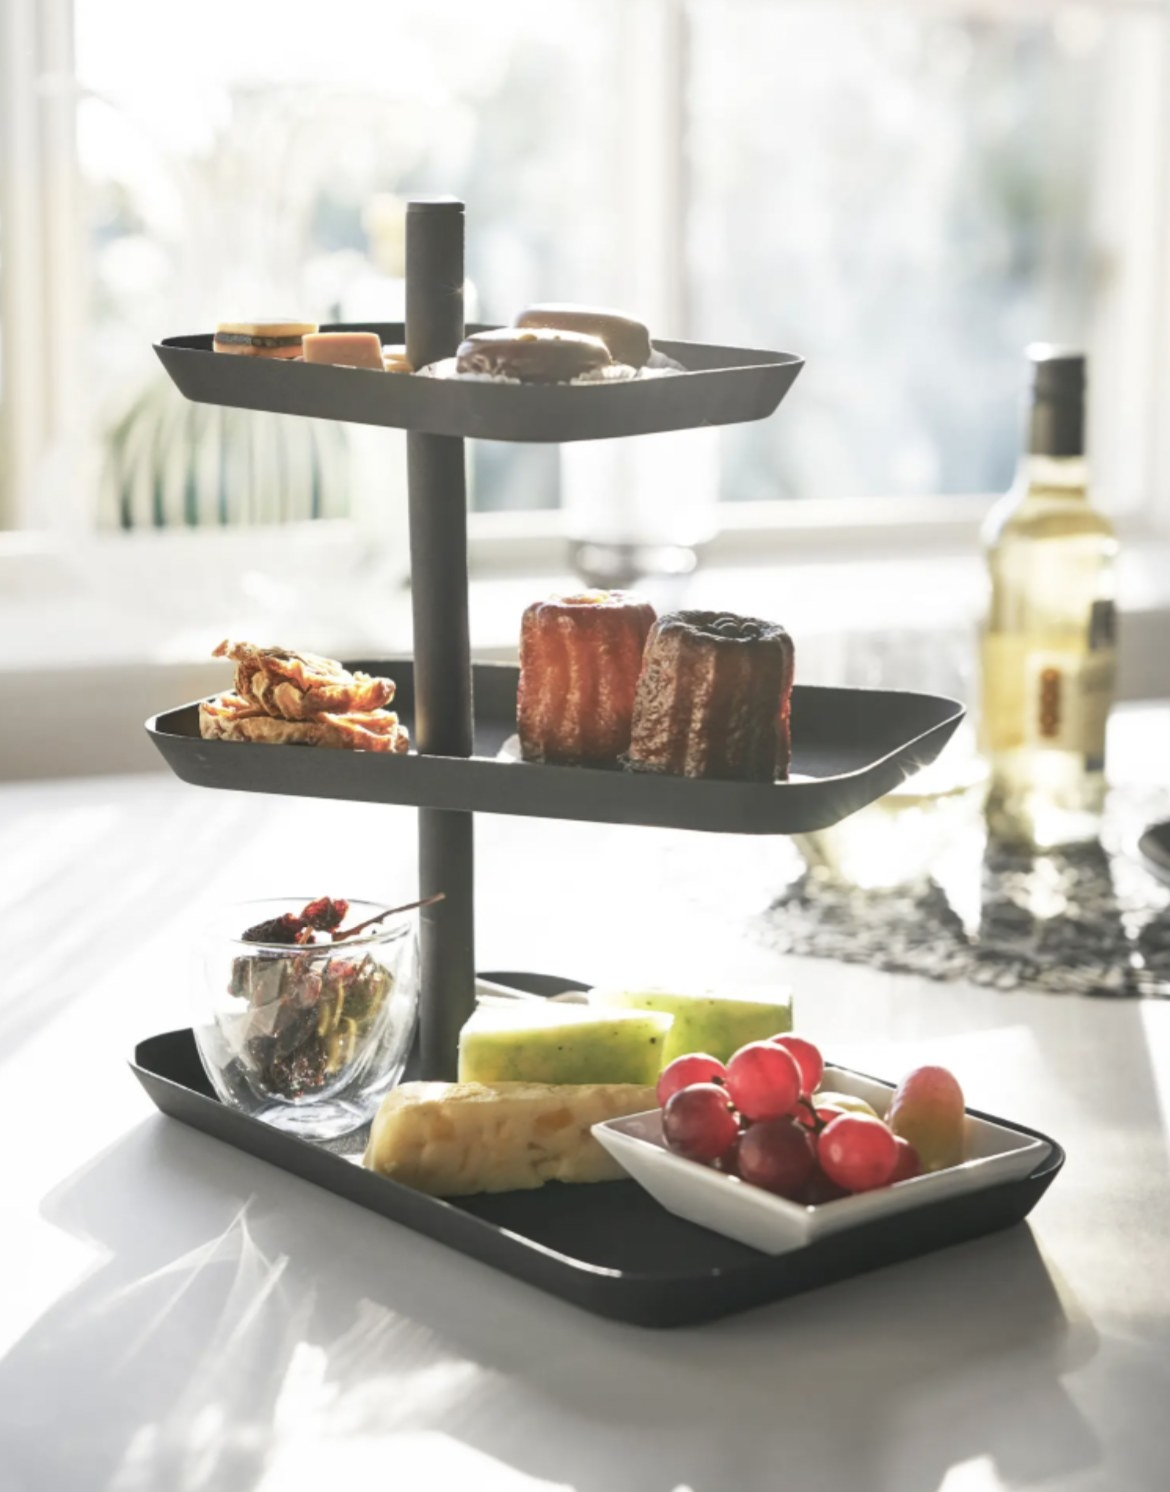 a three tier serving stand in black steel, holding fruits and desserts